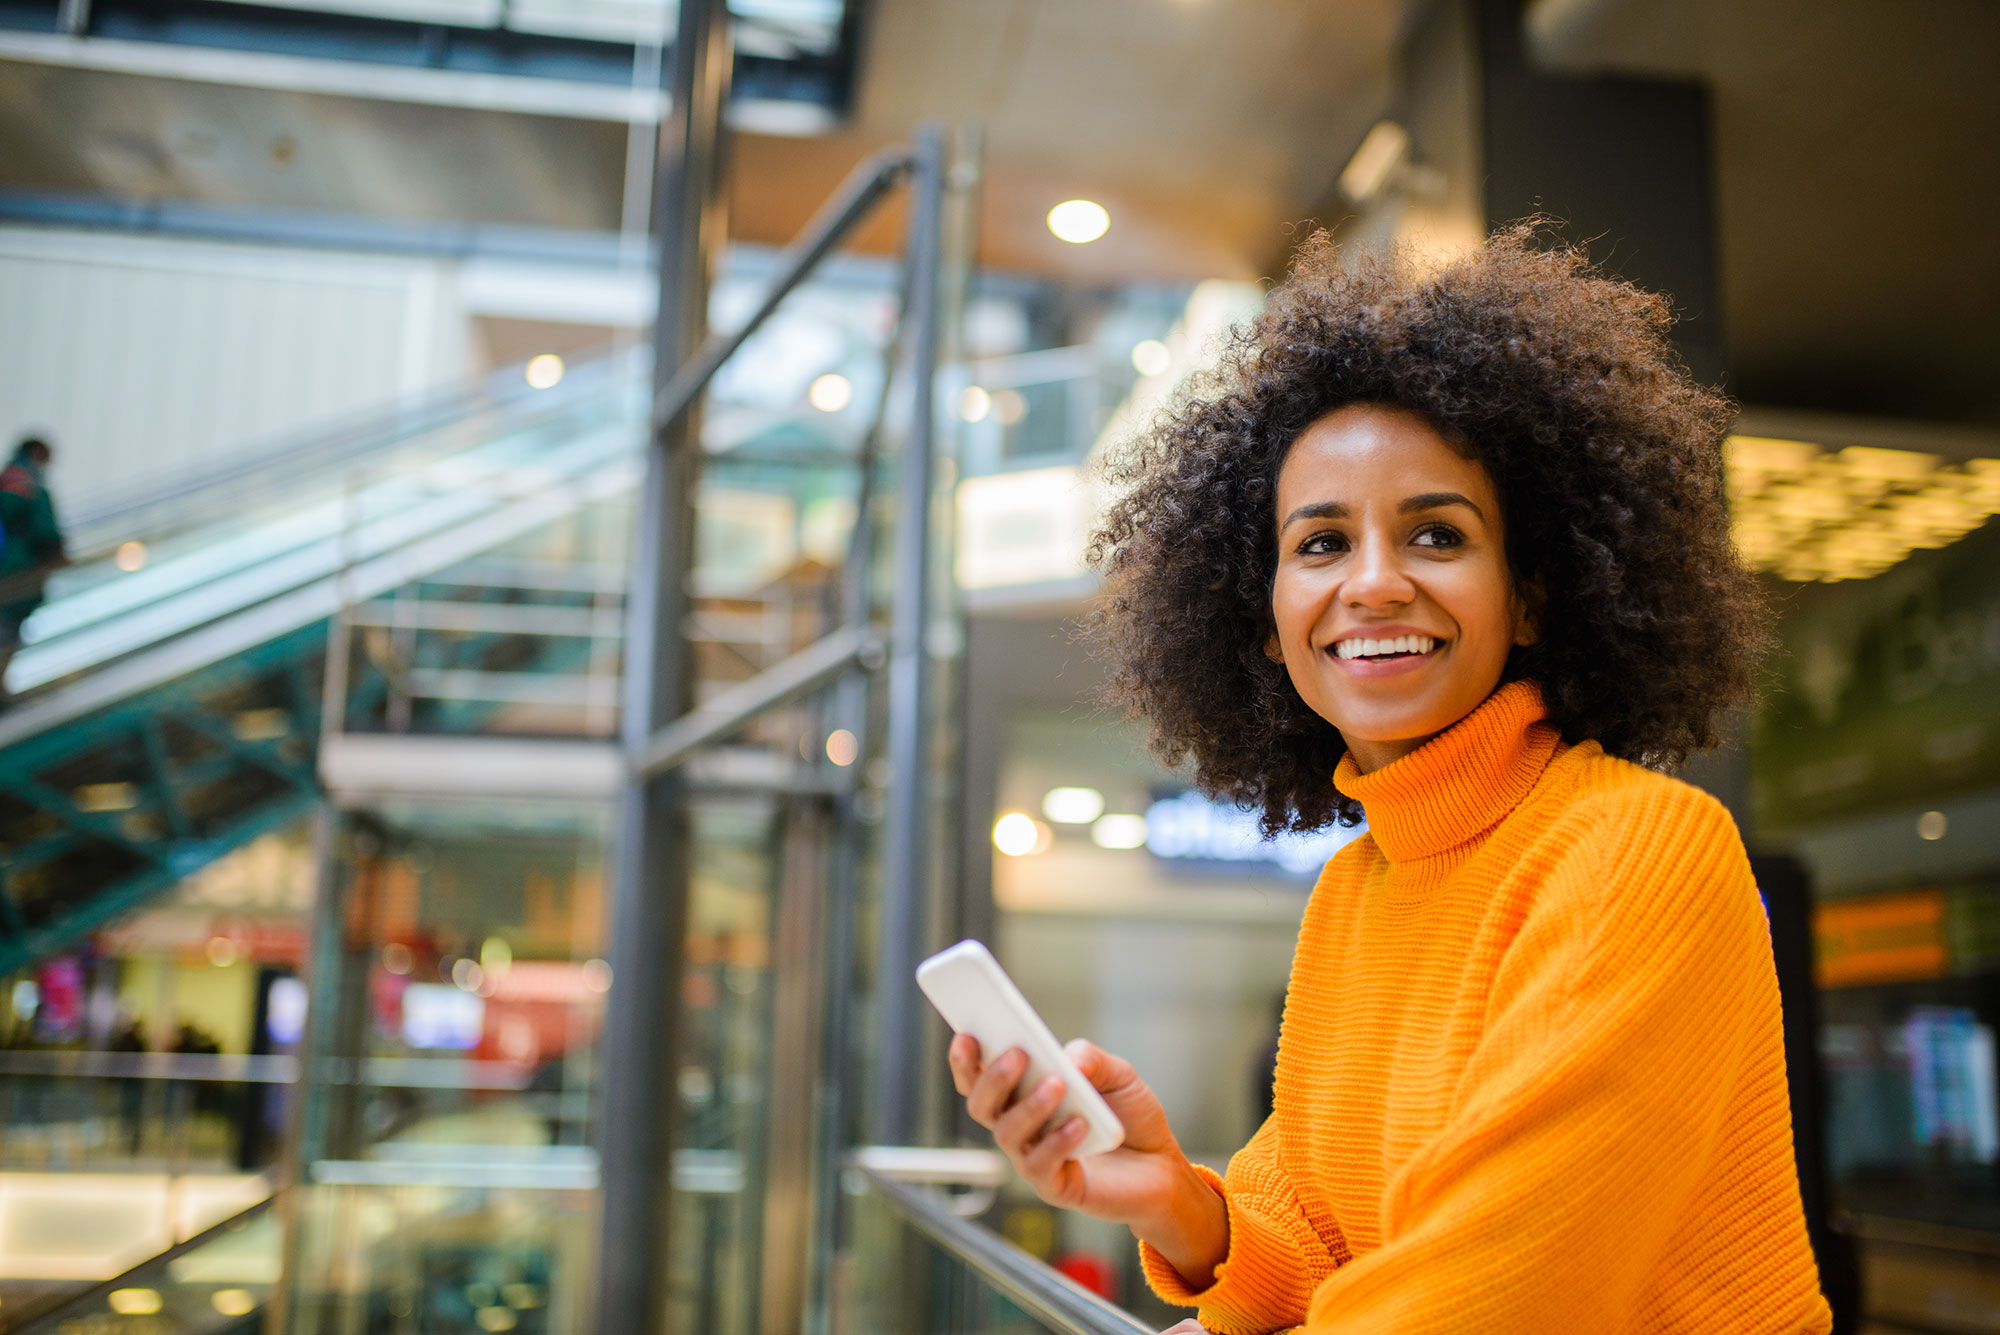 woman-holding-smartphone-in-airport-smiling